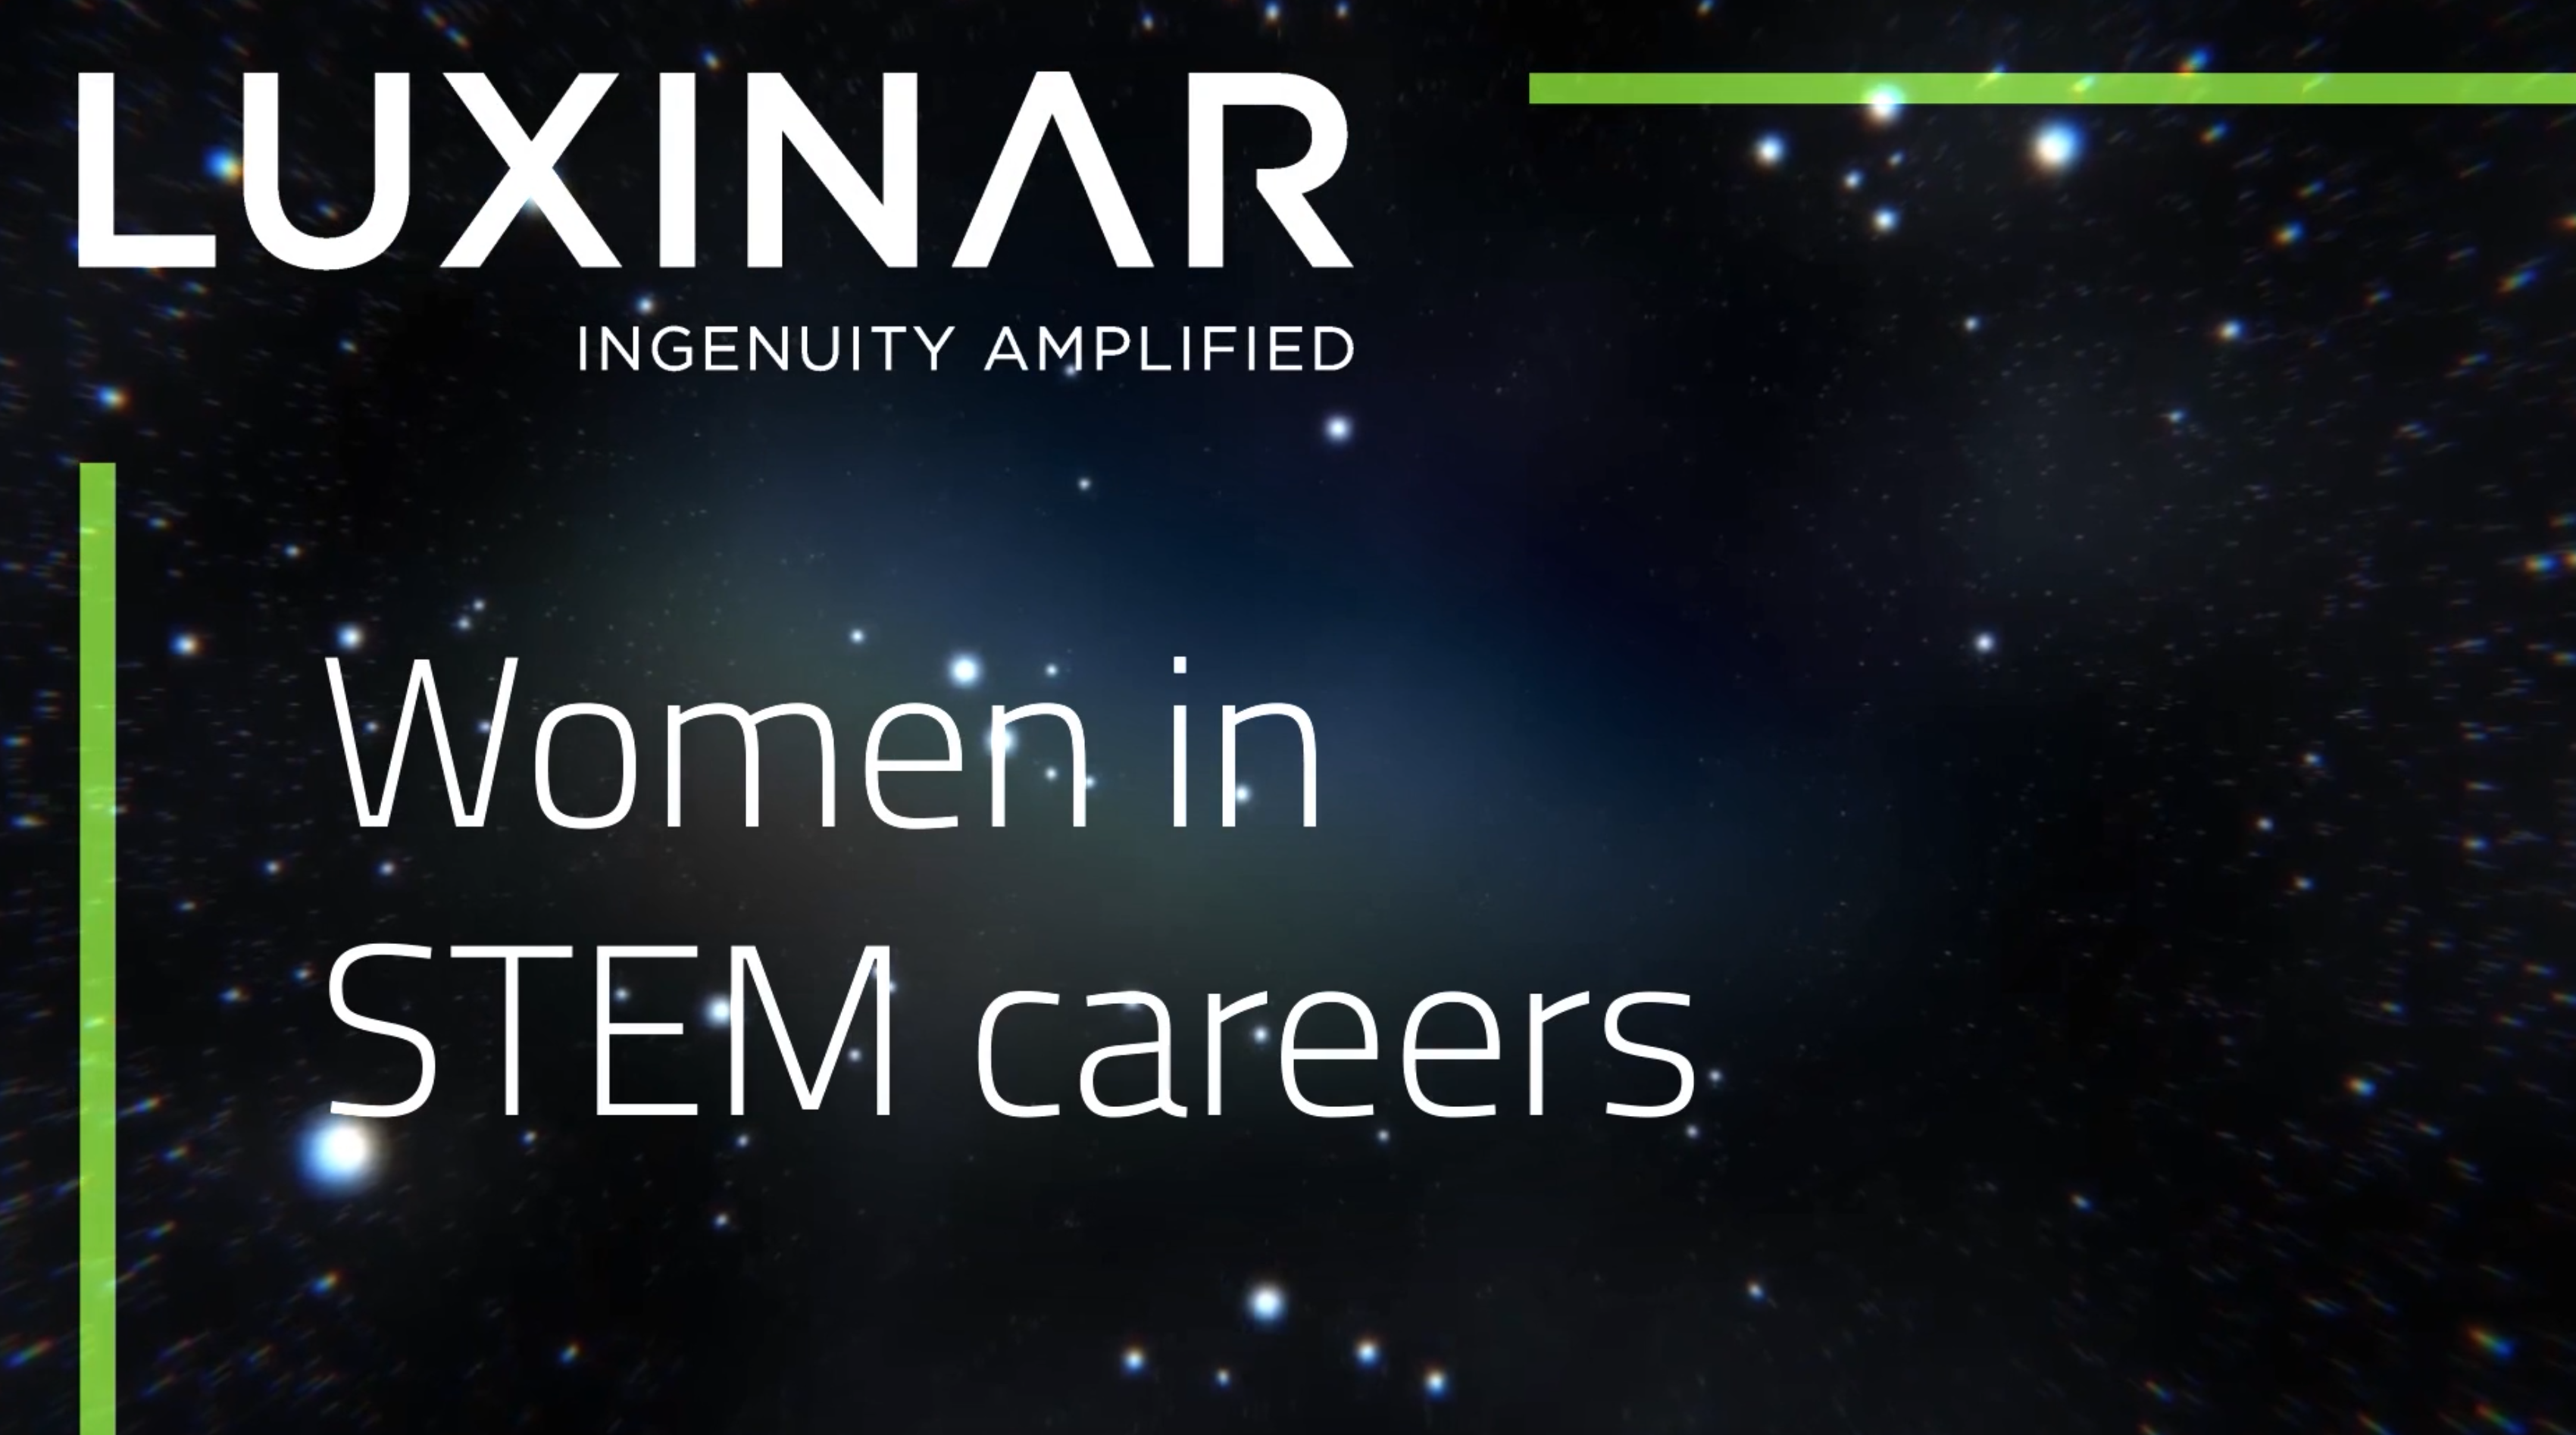 Luxinar supports women in STEM careers video